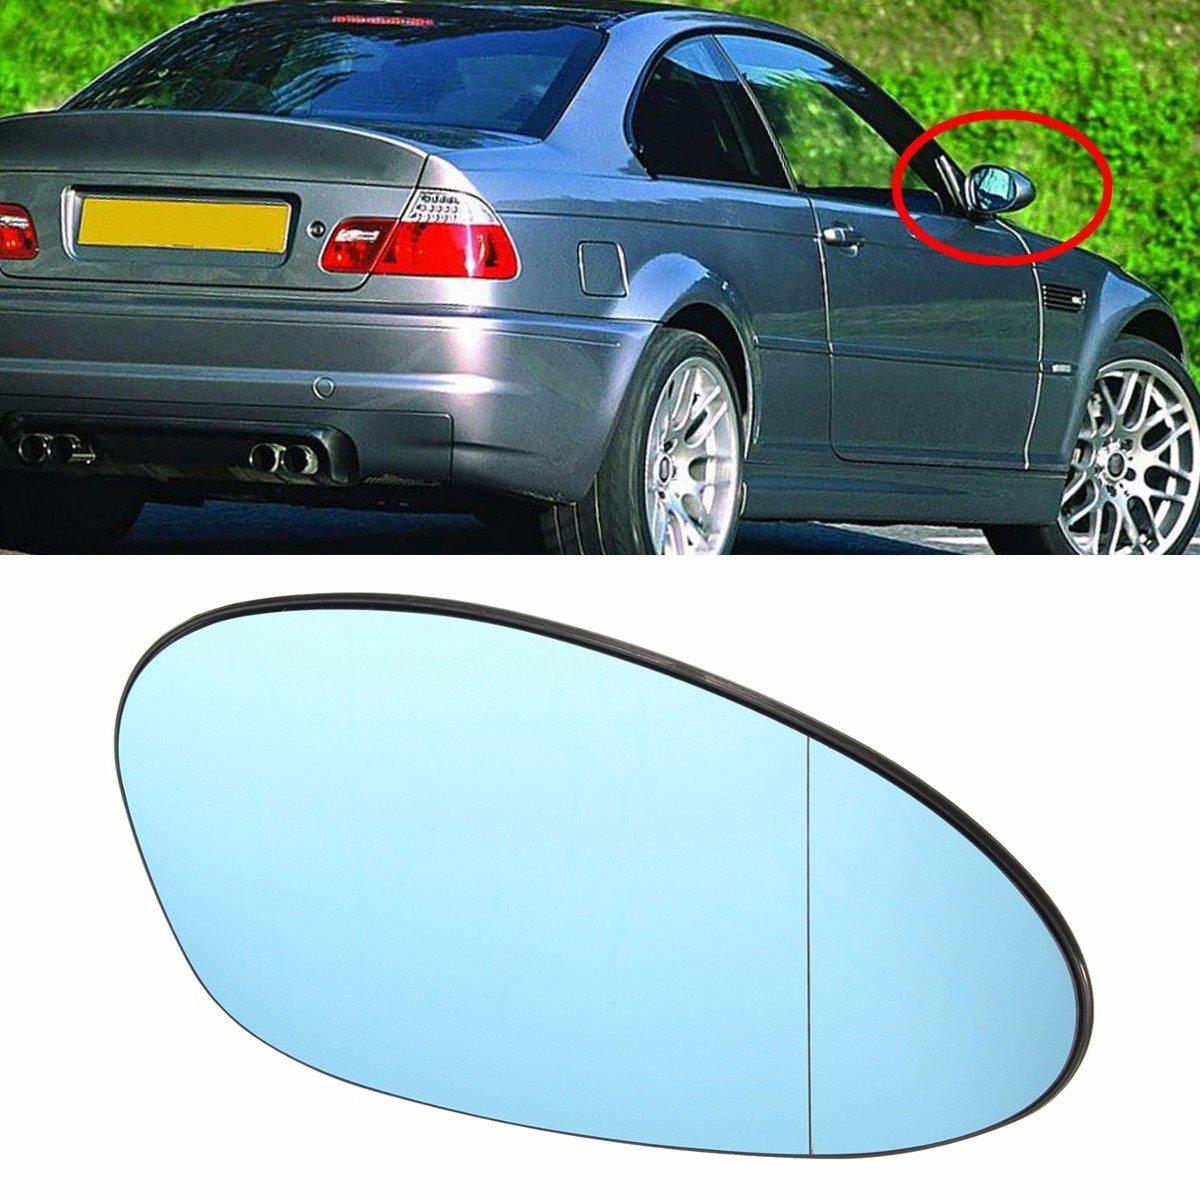 2021 Right Driver Side Blue Tinted Heated Wing Door Mirror Glass For Bmw M3 E46 2001 2002 2003 2004 2005 2006 From Renhuai888 23 06 Dhgate Com